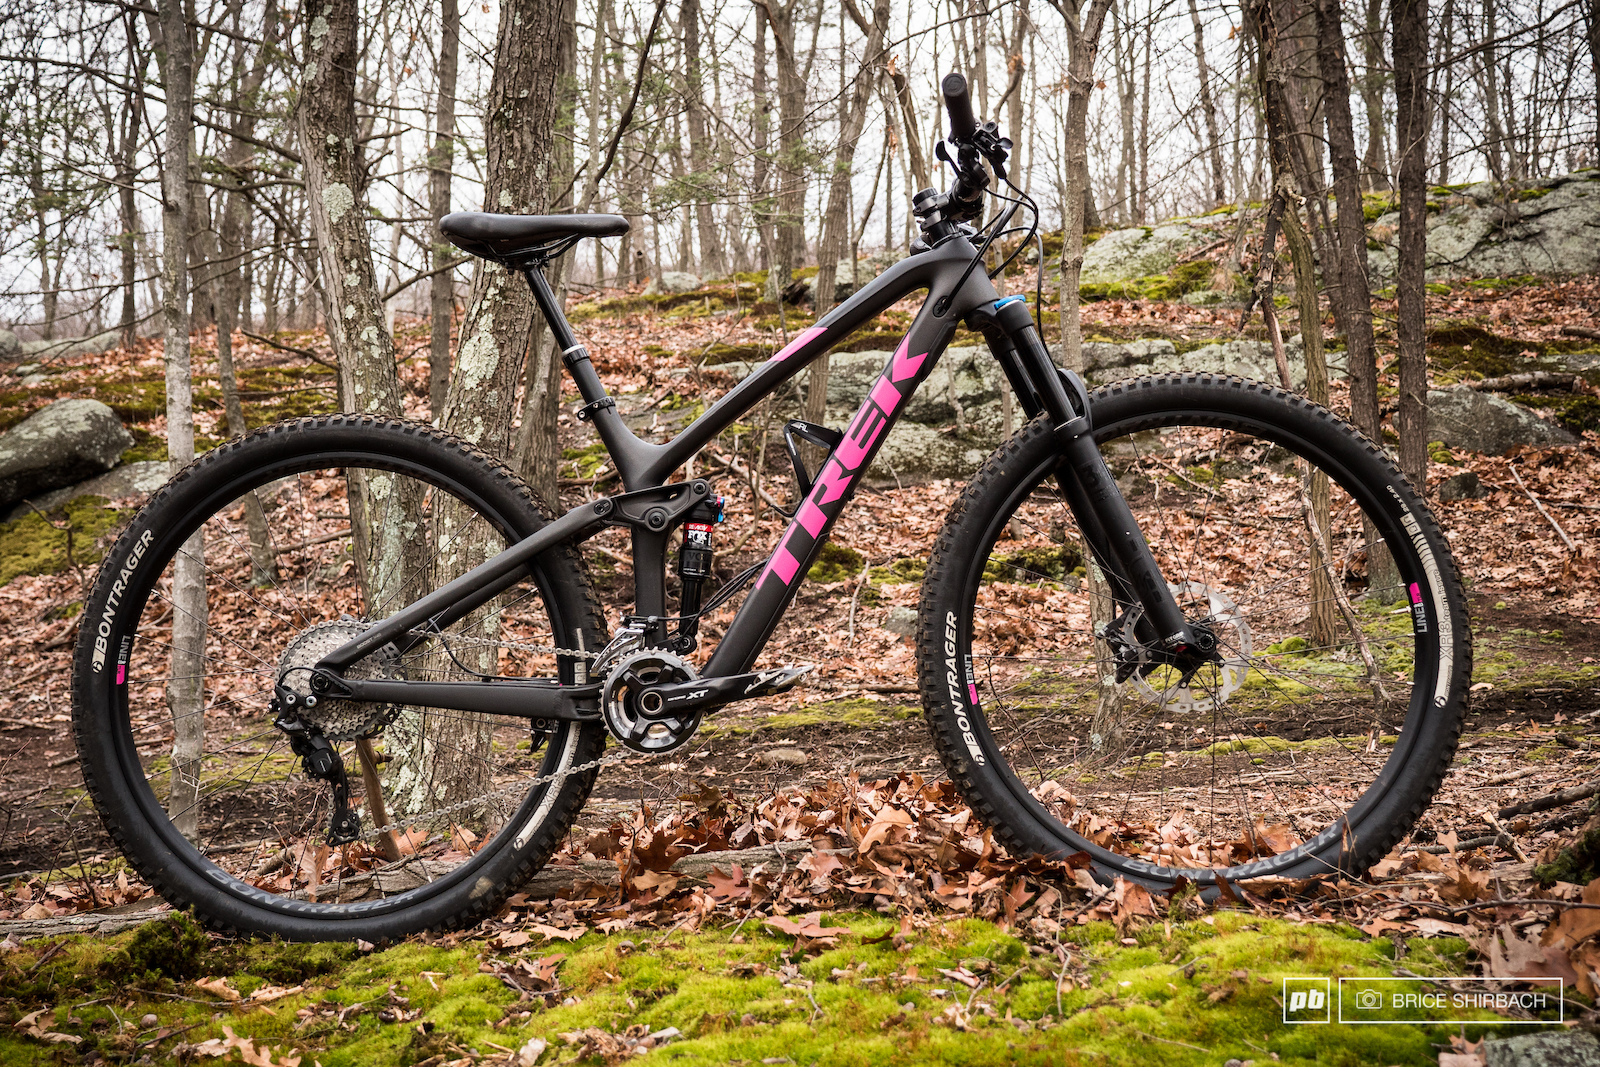 8dfbf91fac7 Trek Fuel EX 9.8 Women's - Review - Pinkbike